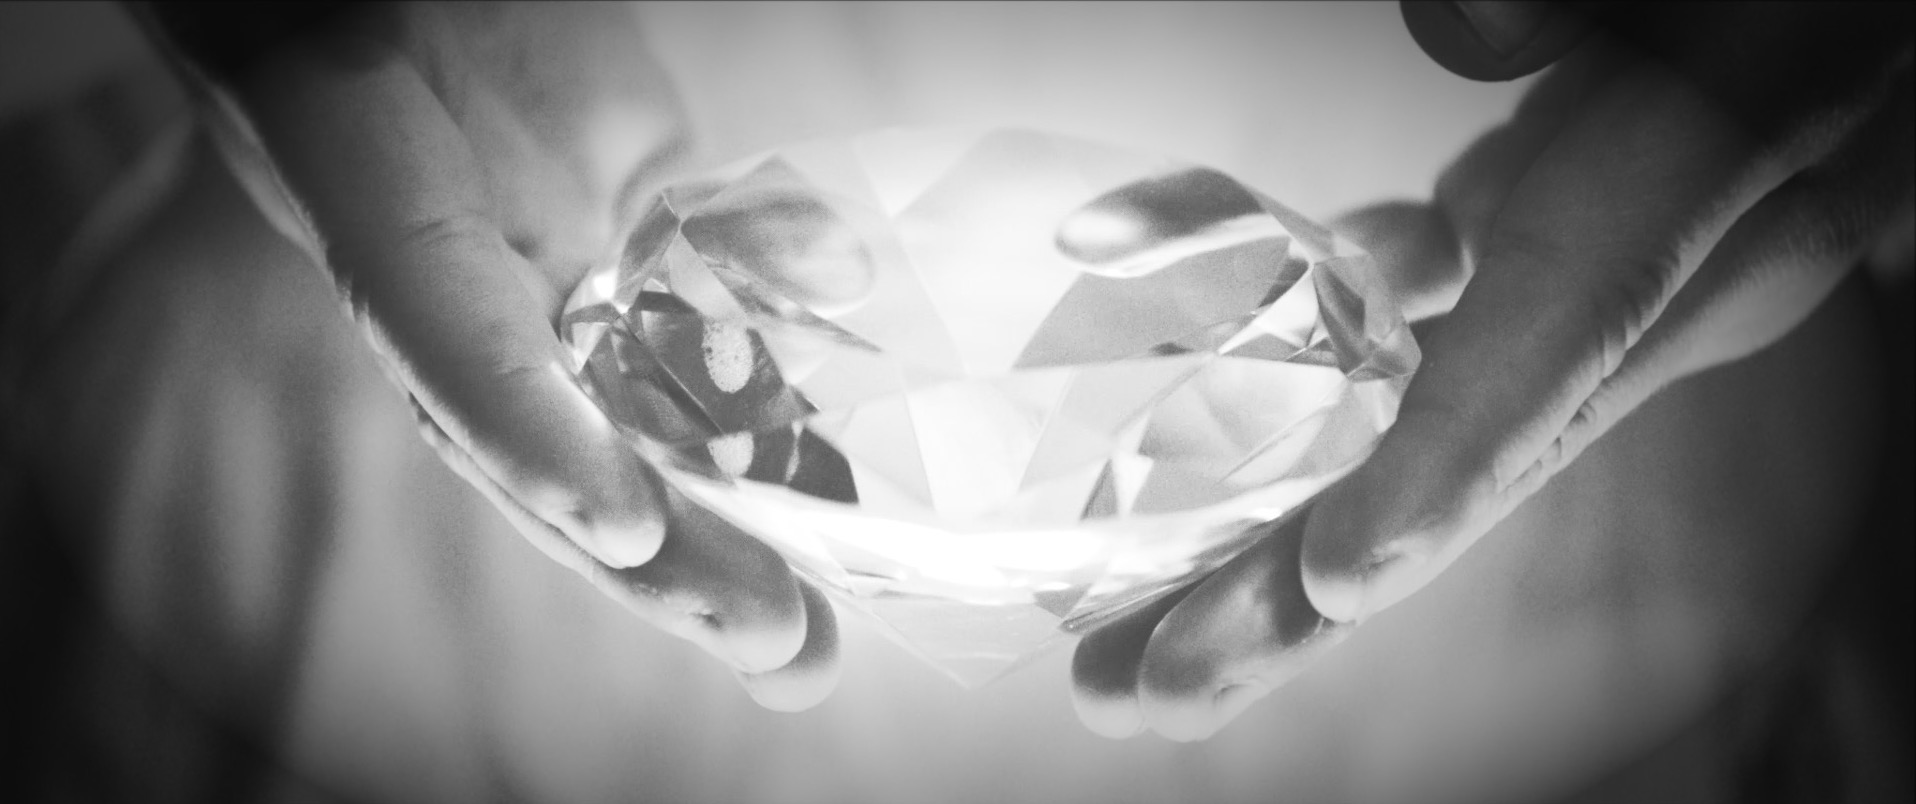 Diamond vignette 2 cropped